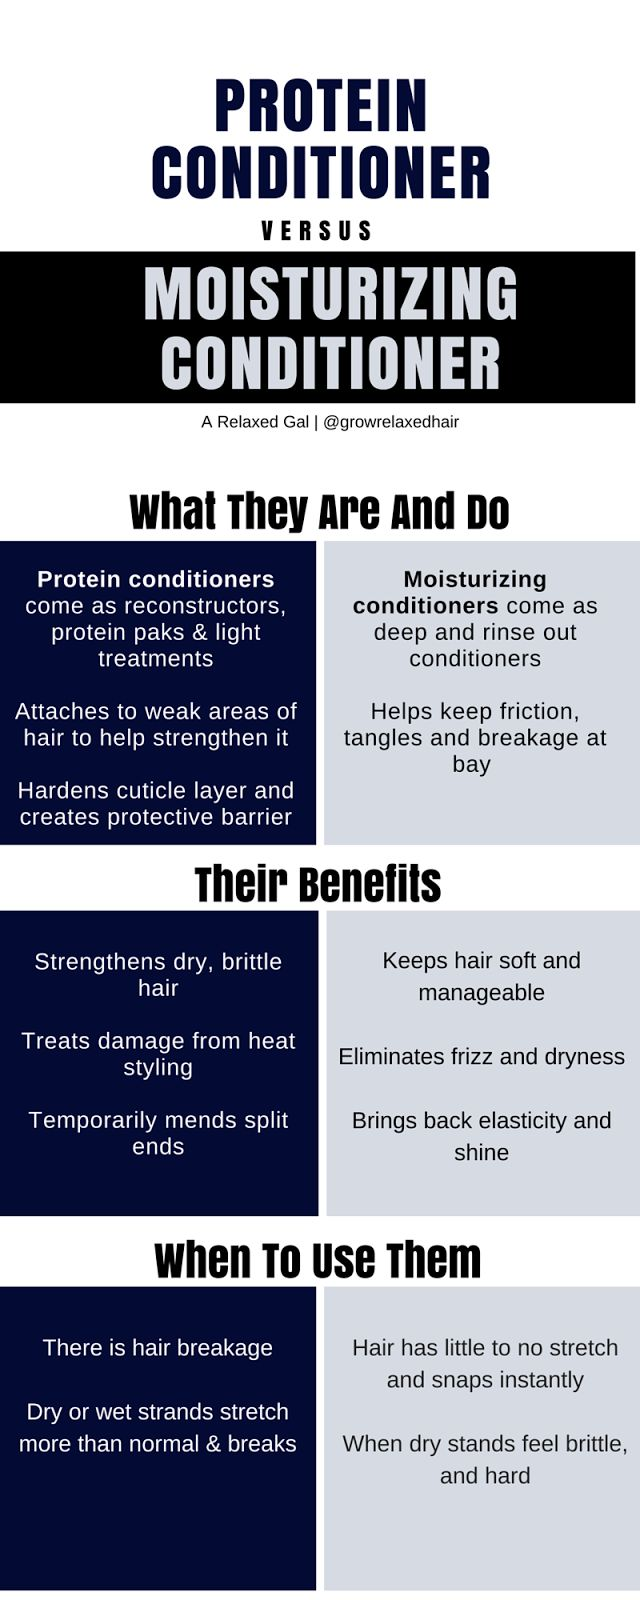 Protein conditioner vs. moisturizing conditioner